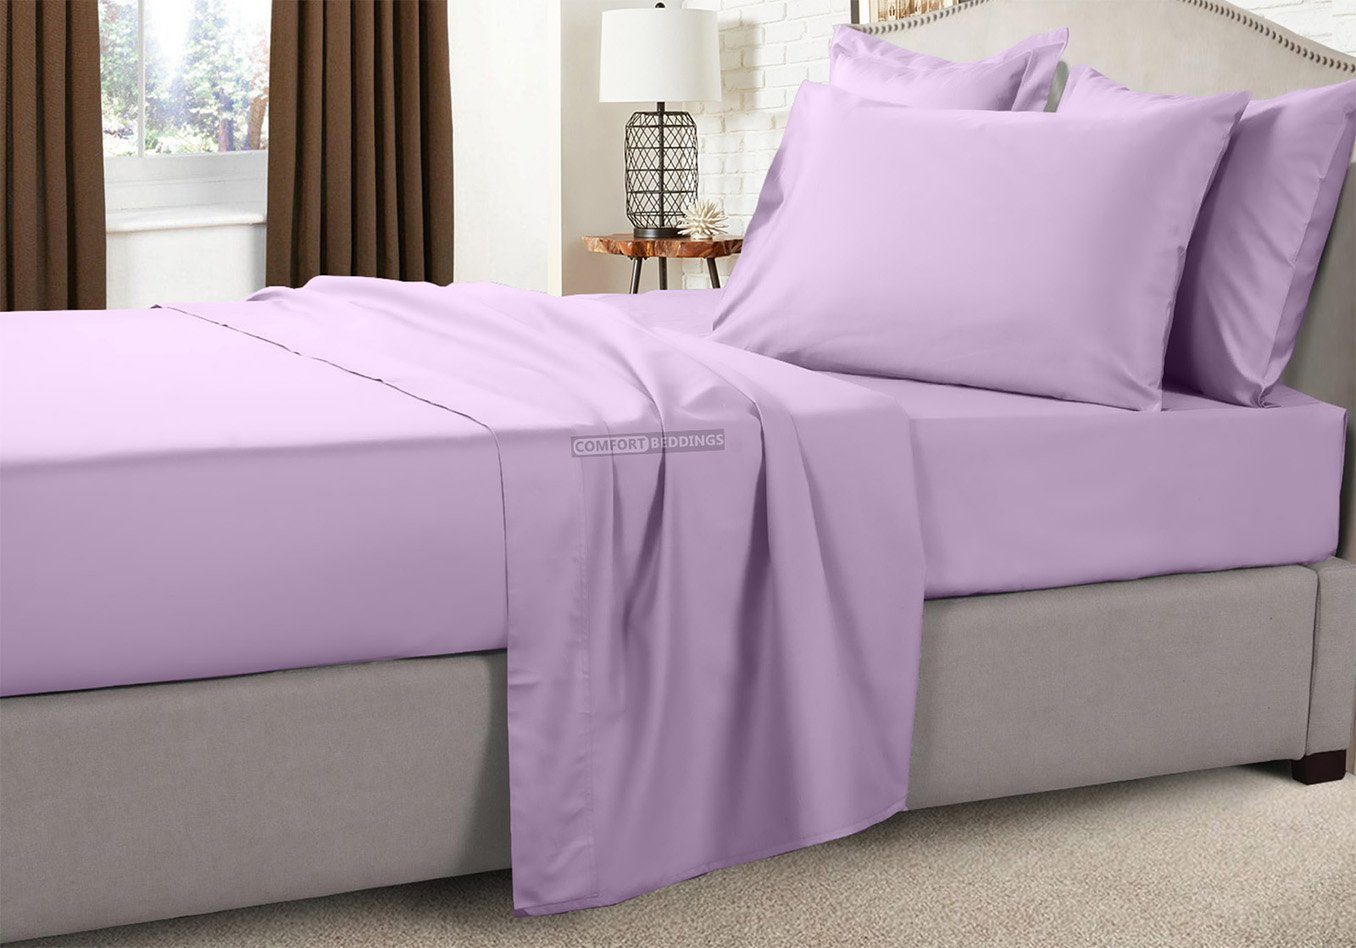 Lilac RV sheet set